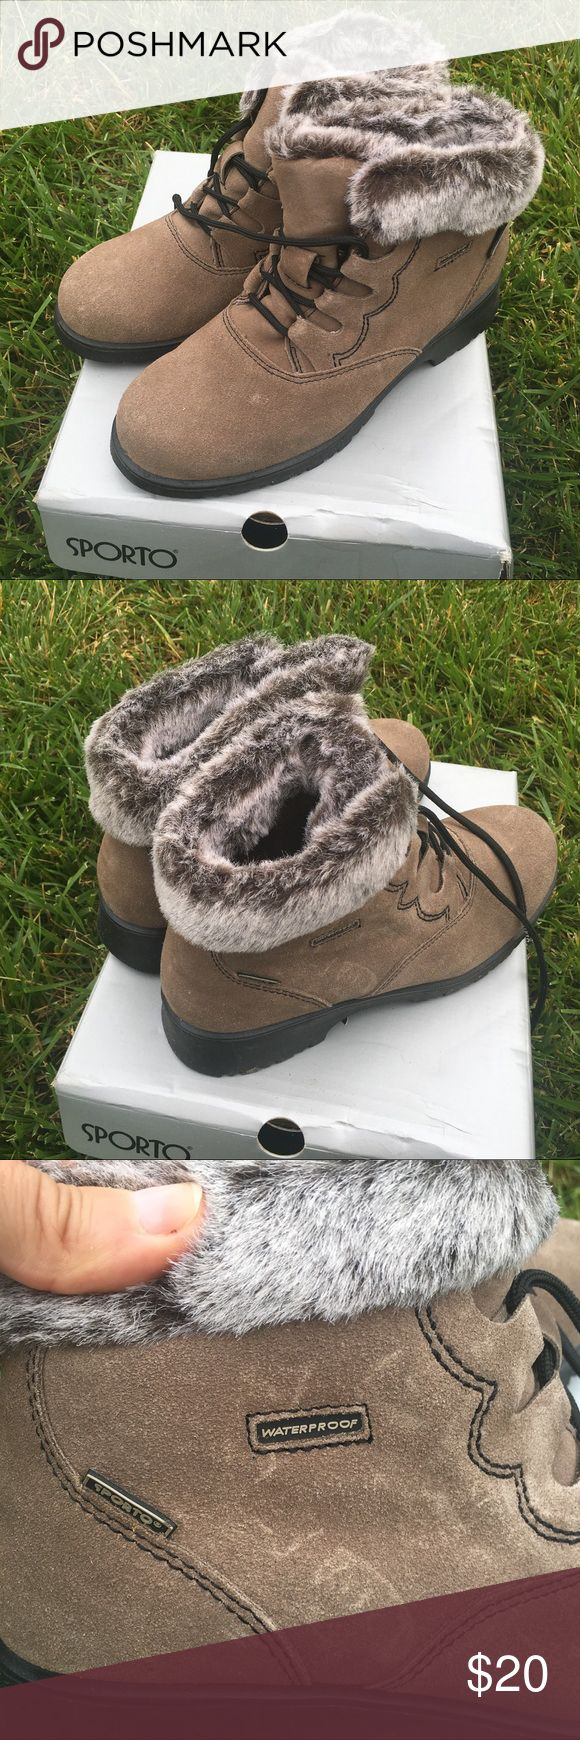 Sporto fur-lined boots Faux fur lined Waterproof boots. The were worn only a few times and are in excellent condition. They come with the box!!! Shoes Winter & Rain Boots